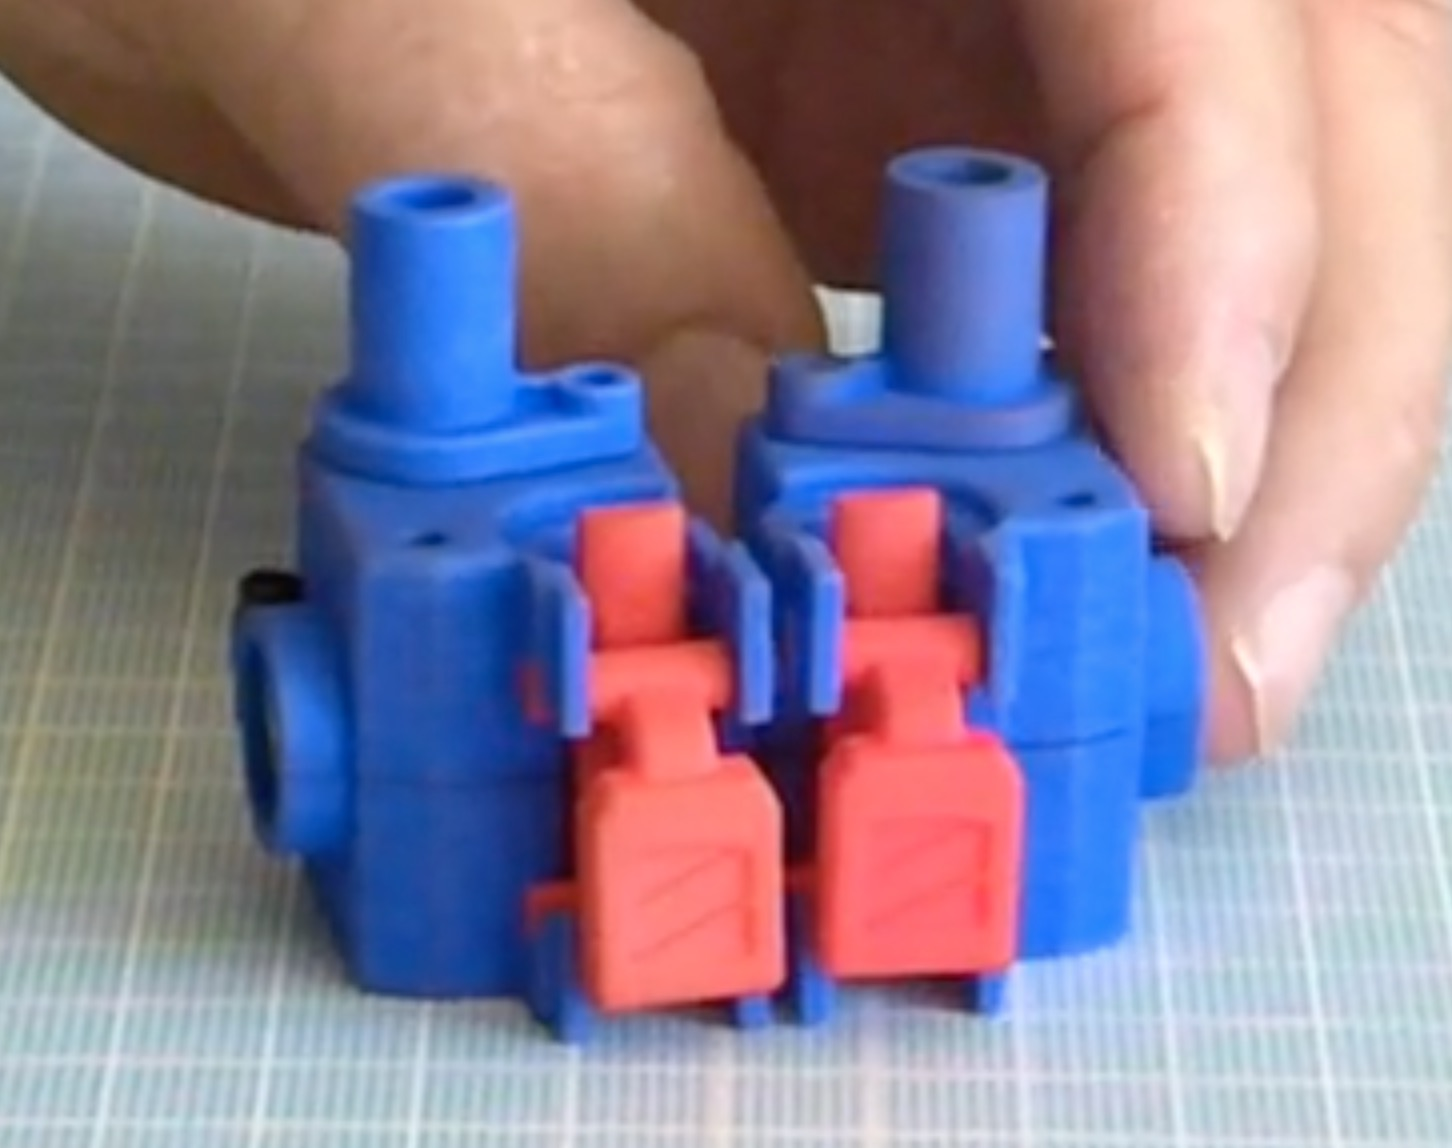 The Zesty Nimble 3D printer extruder is reversible